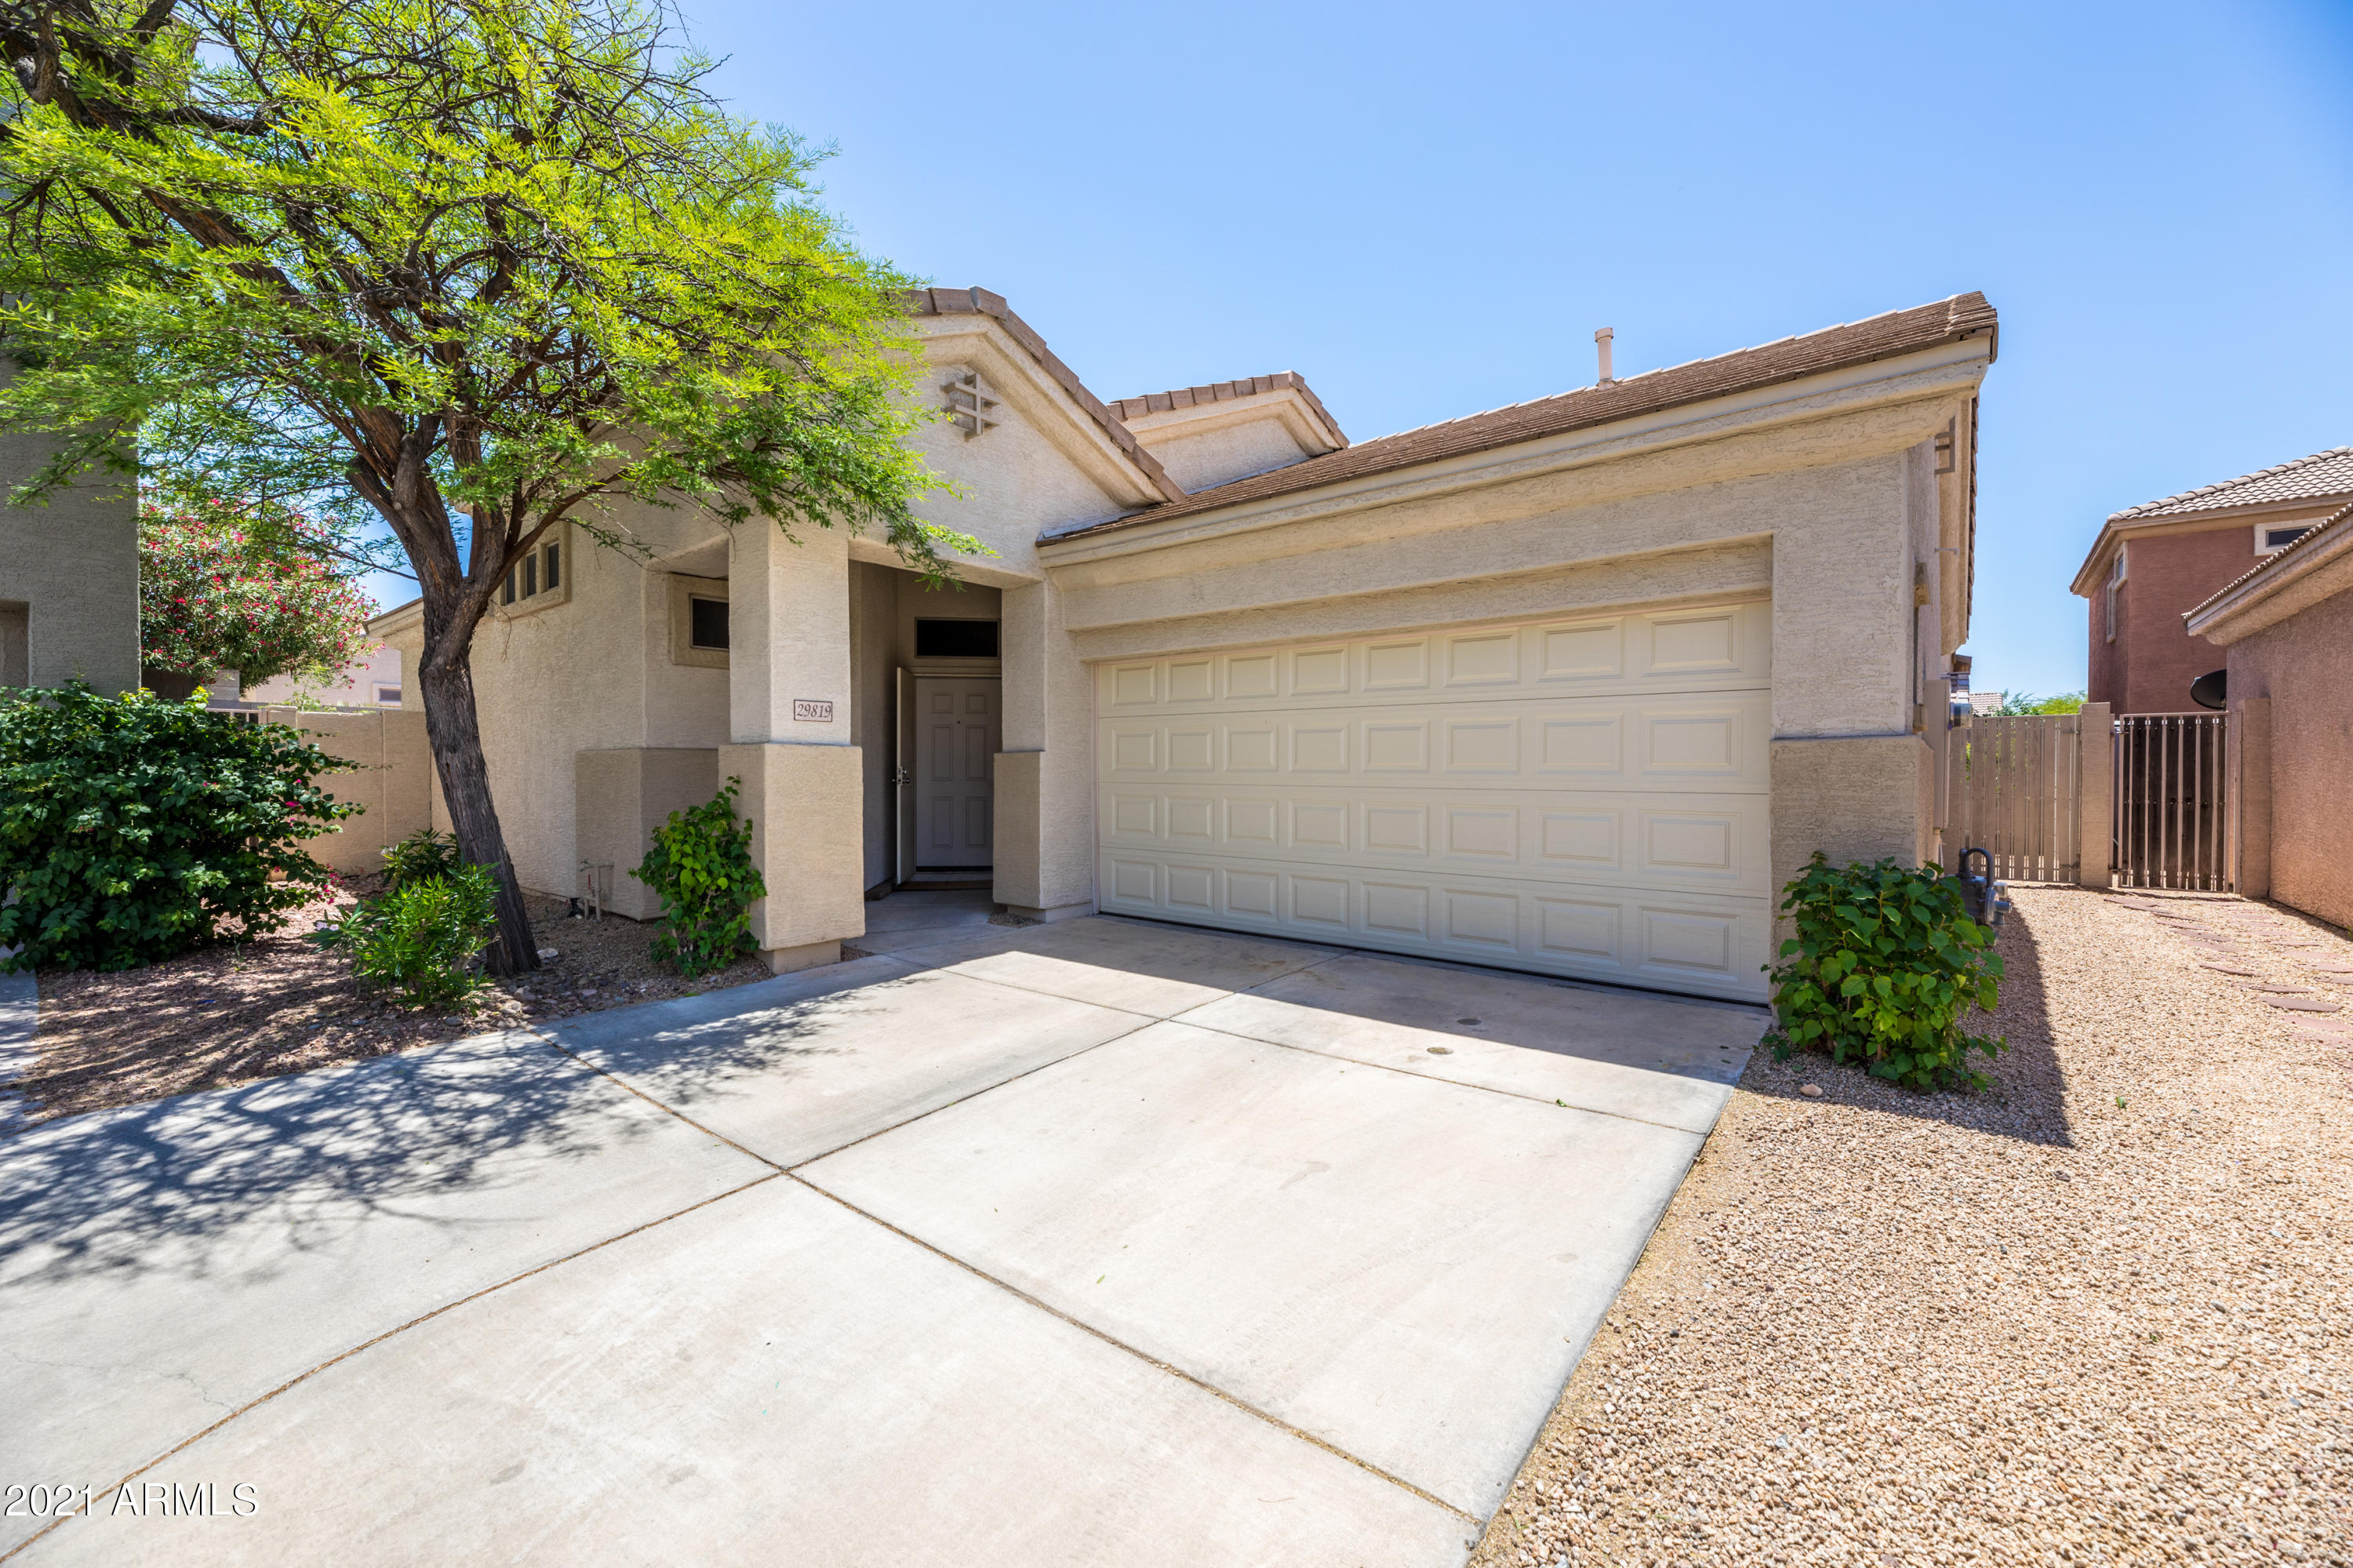 Serene desert abode situated on a quiet cul-de-sac in the highly desirable neighborhood of Tatum Ranch. This home boasts an open great room floorplan featuring vaulted ceilings, and an abundance of natural light. The upgraded kitchen offers granite countertops, stainless steel appliances, and island facing the family room. Spacious split master bedroom offers newer carpet, walk-in shower, and sliding glass doors leading directly onto the back patio. Two more sizable bedrooms enjoy comfortable carpet, large windows, and share full bath including newer cabinets installed 2018. Sunny south-facing backyard boasting two patios, plush grass, and low maintenance desert landscaping. Spectacular golf courses, schools, shopping, hiking, and 101 & 51 freeways within minutes of this charming home.